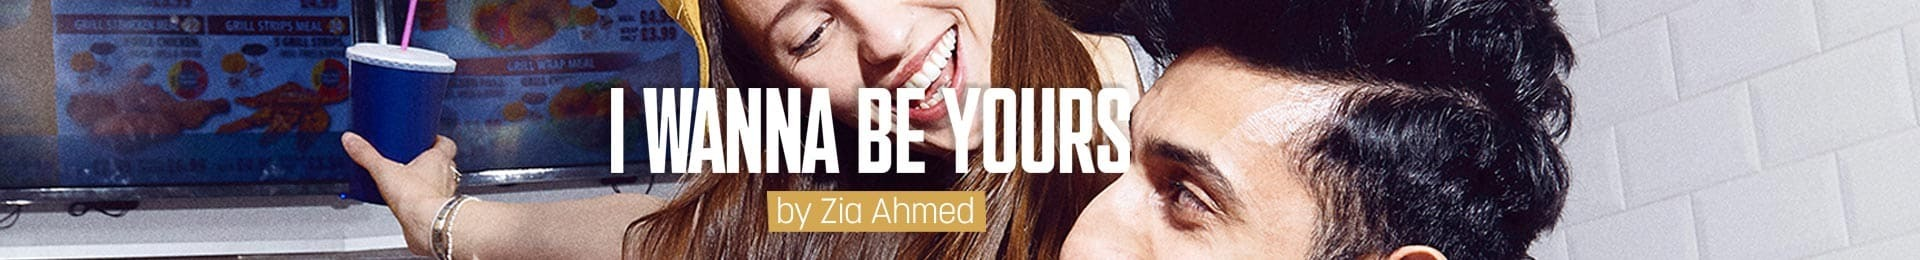 I Wanna Be Yours banner image